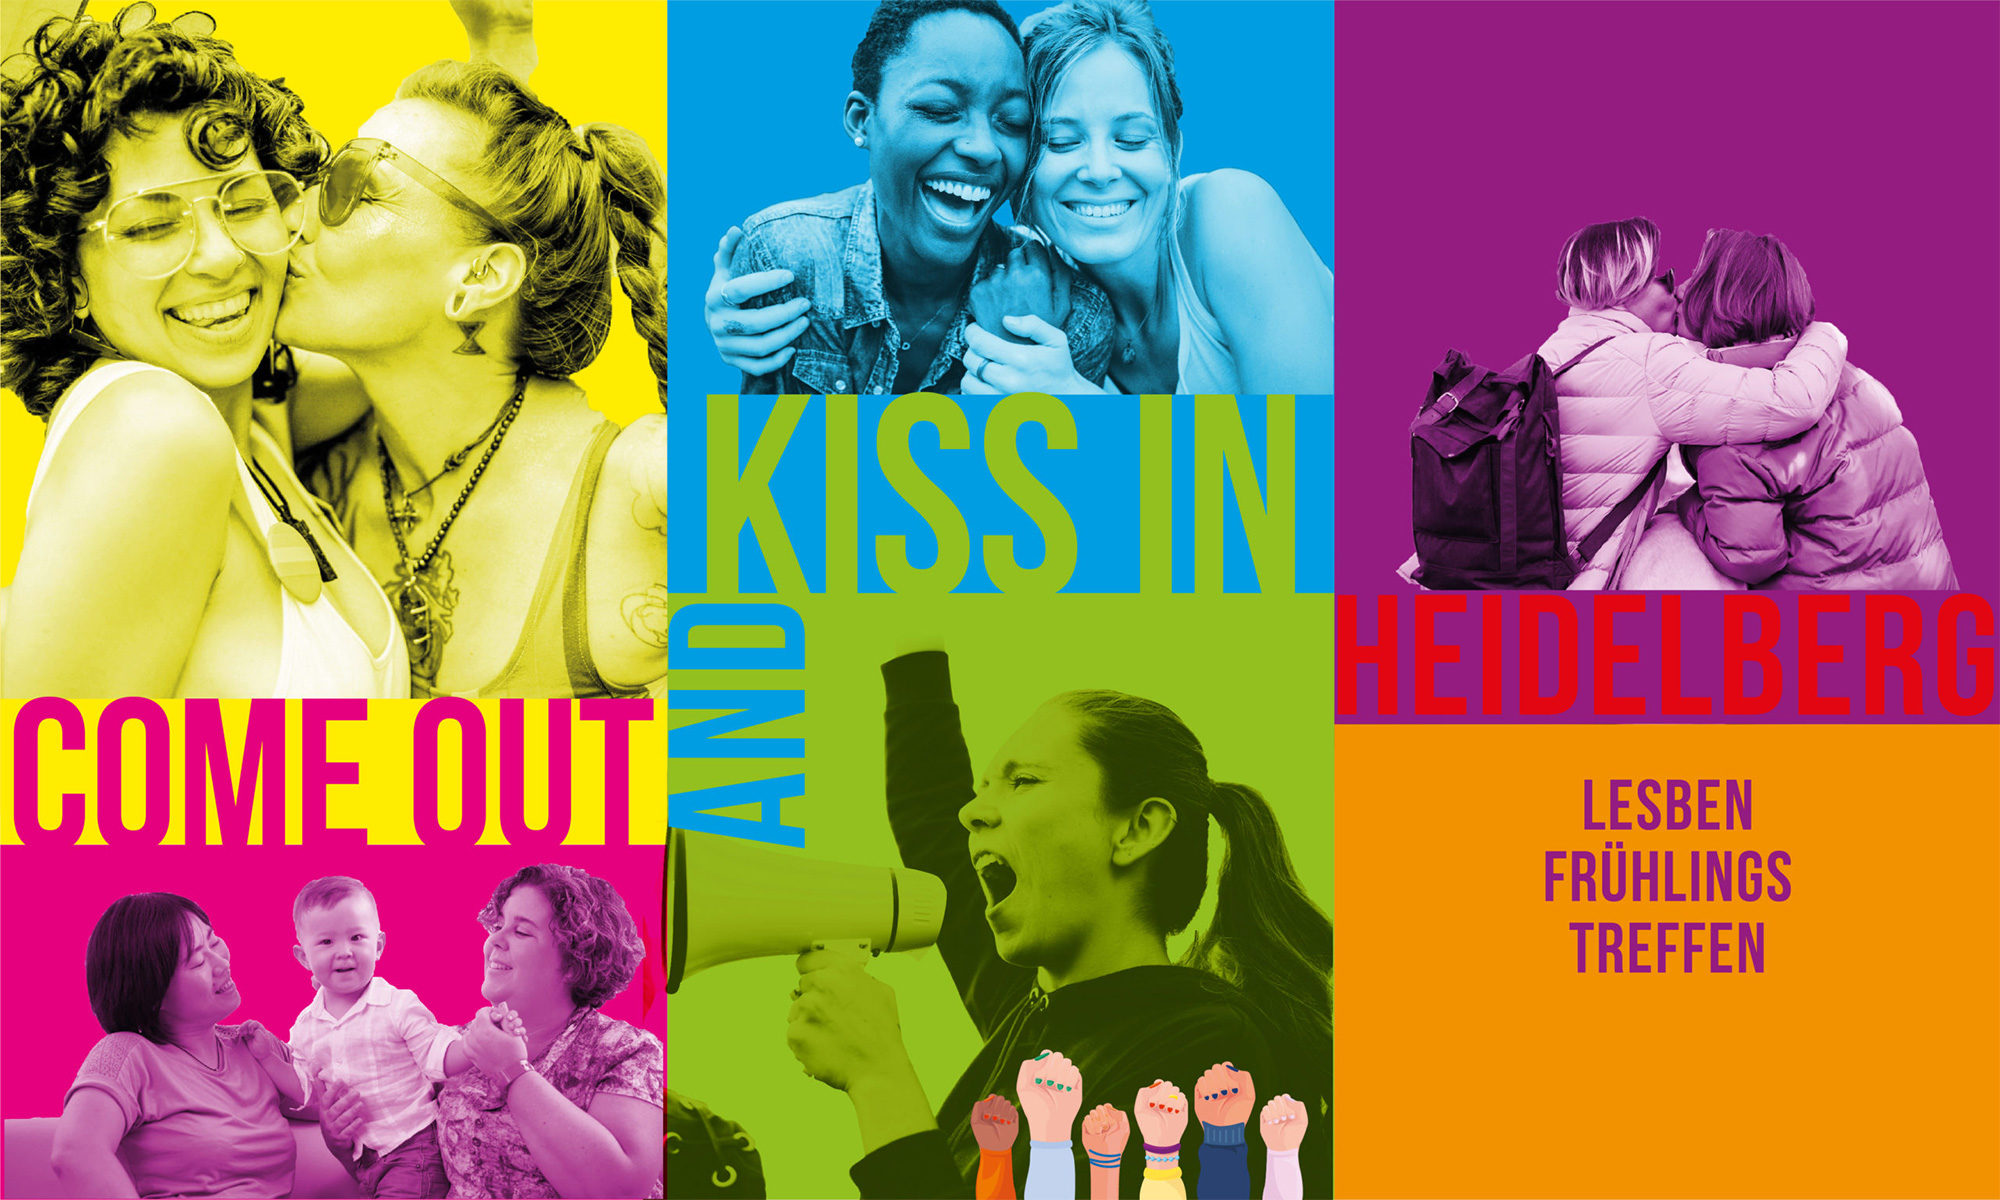 LFT2020 - Come Out and Kiss in Heidelberg